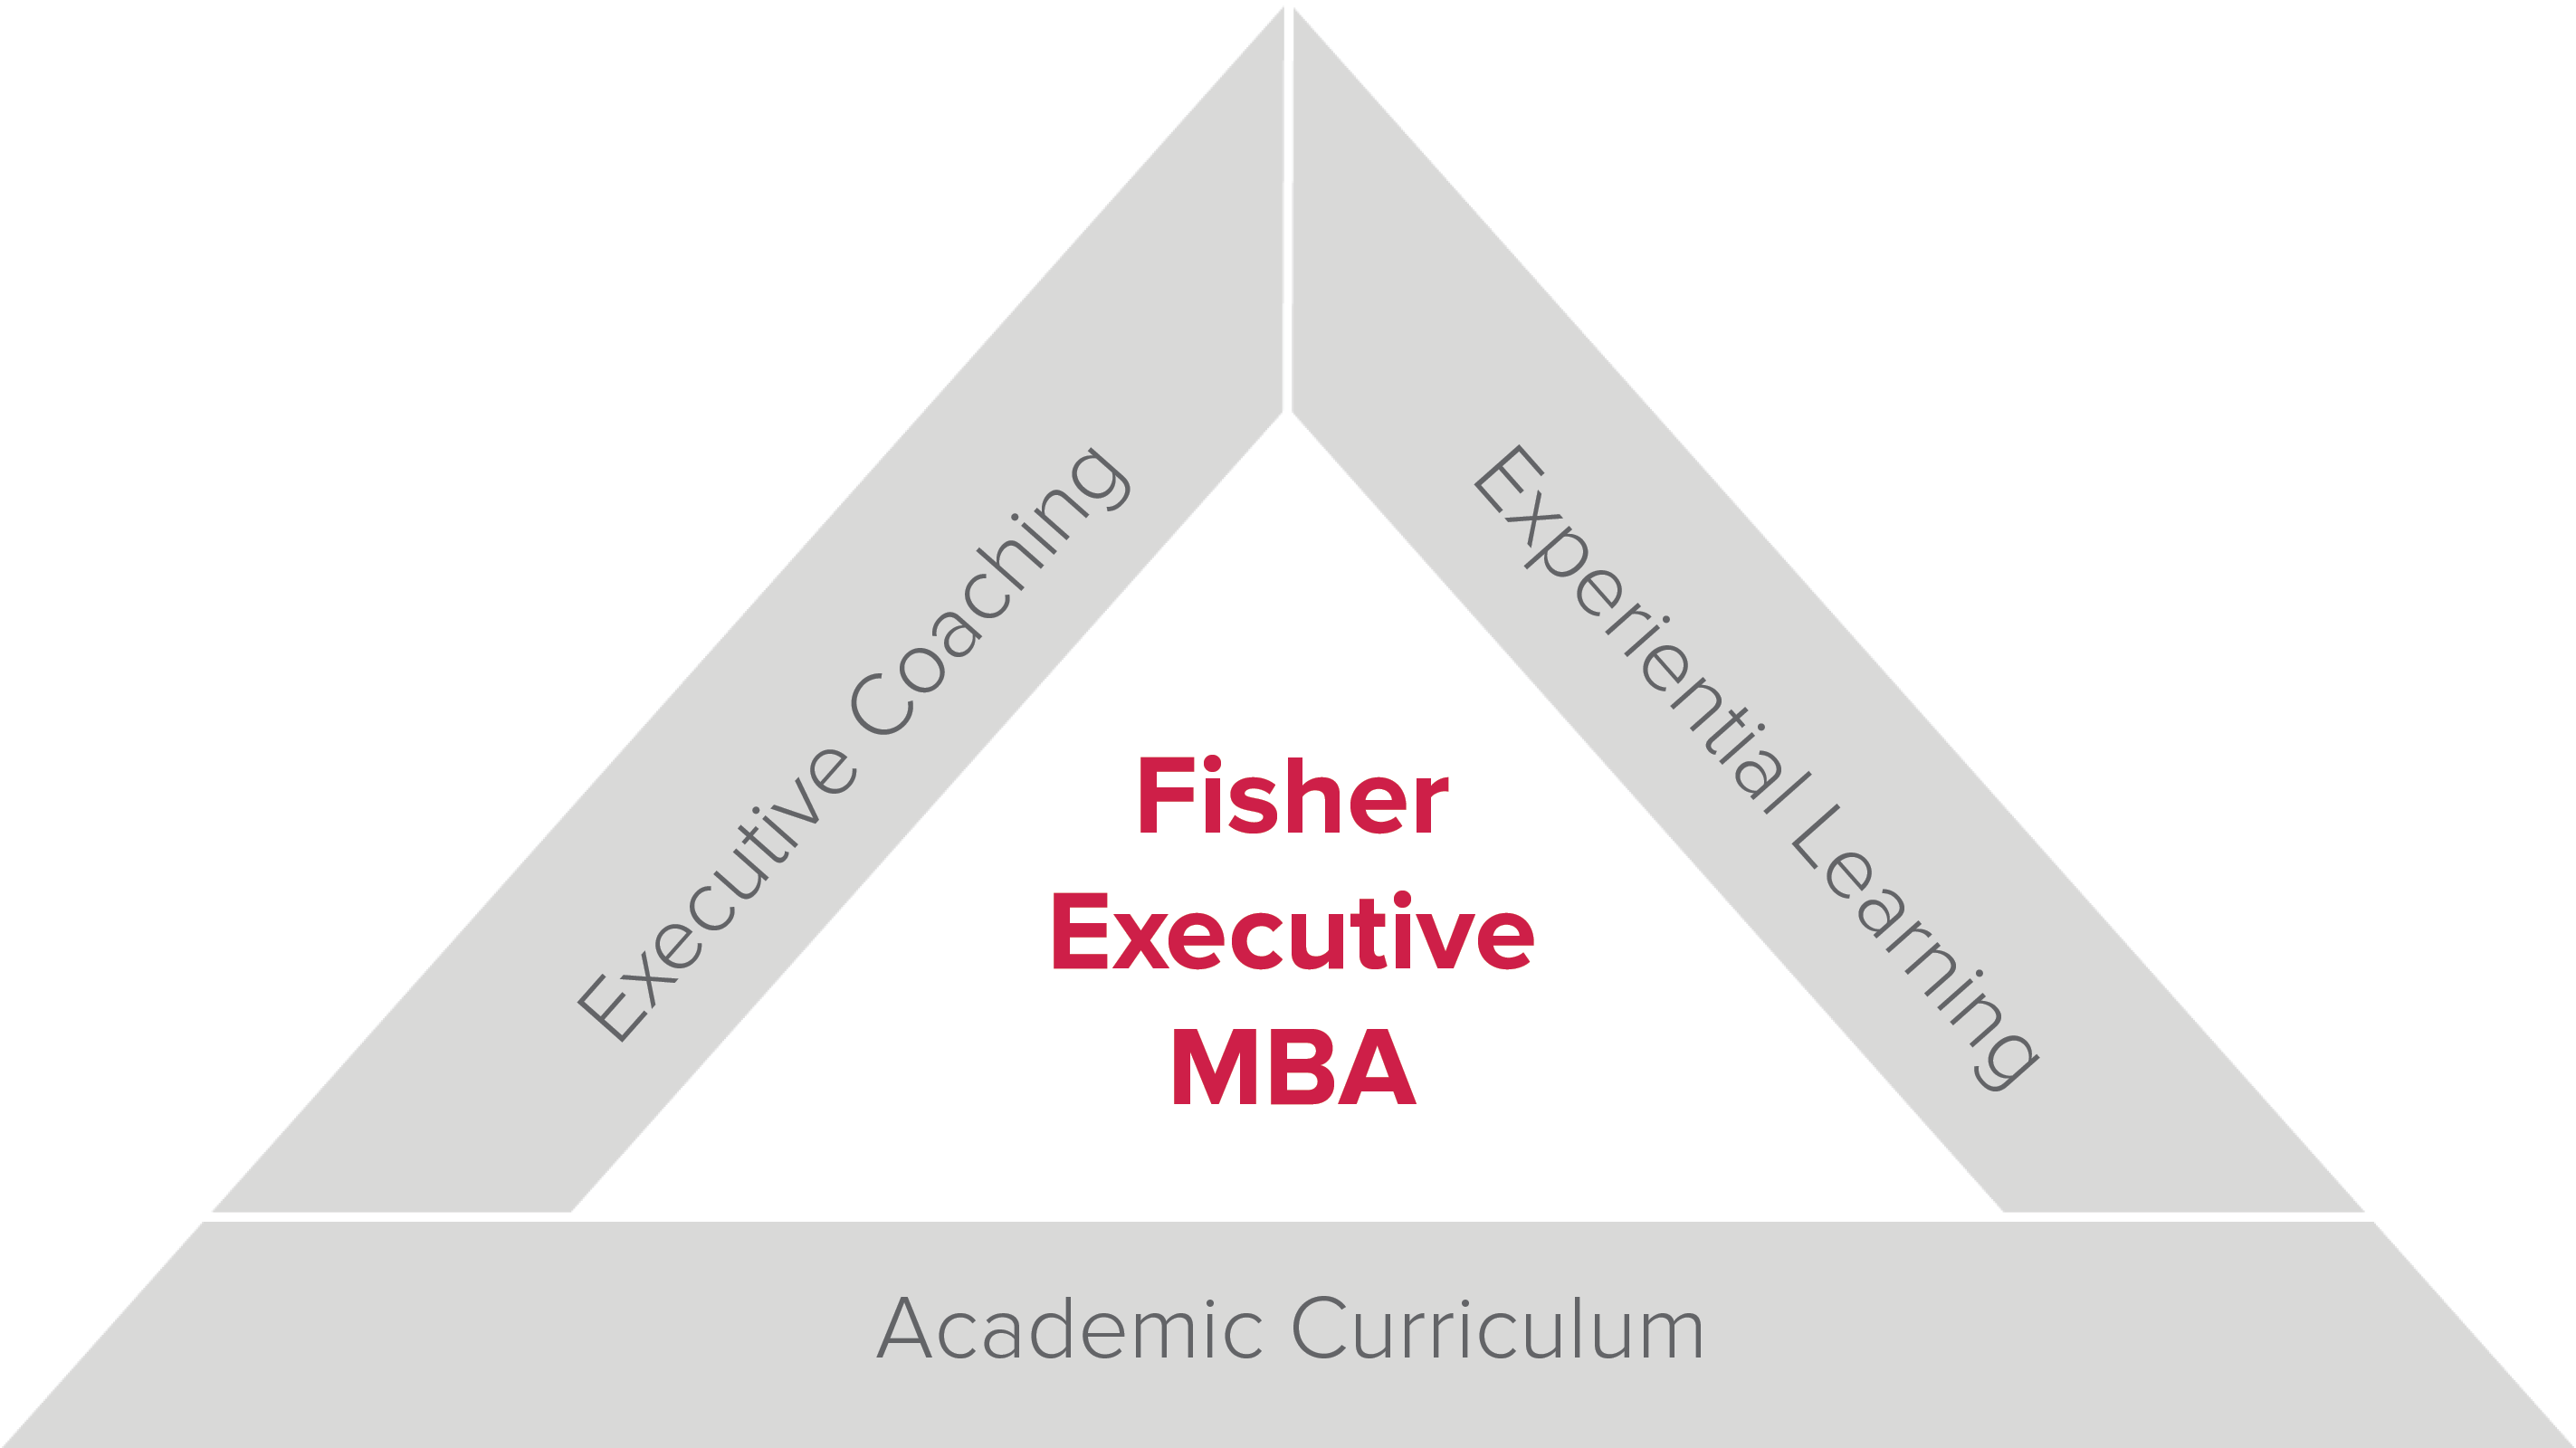 Executive MBA | Fisher College of Business